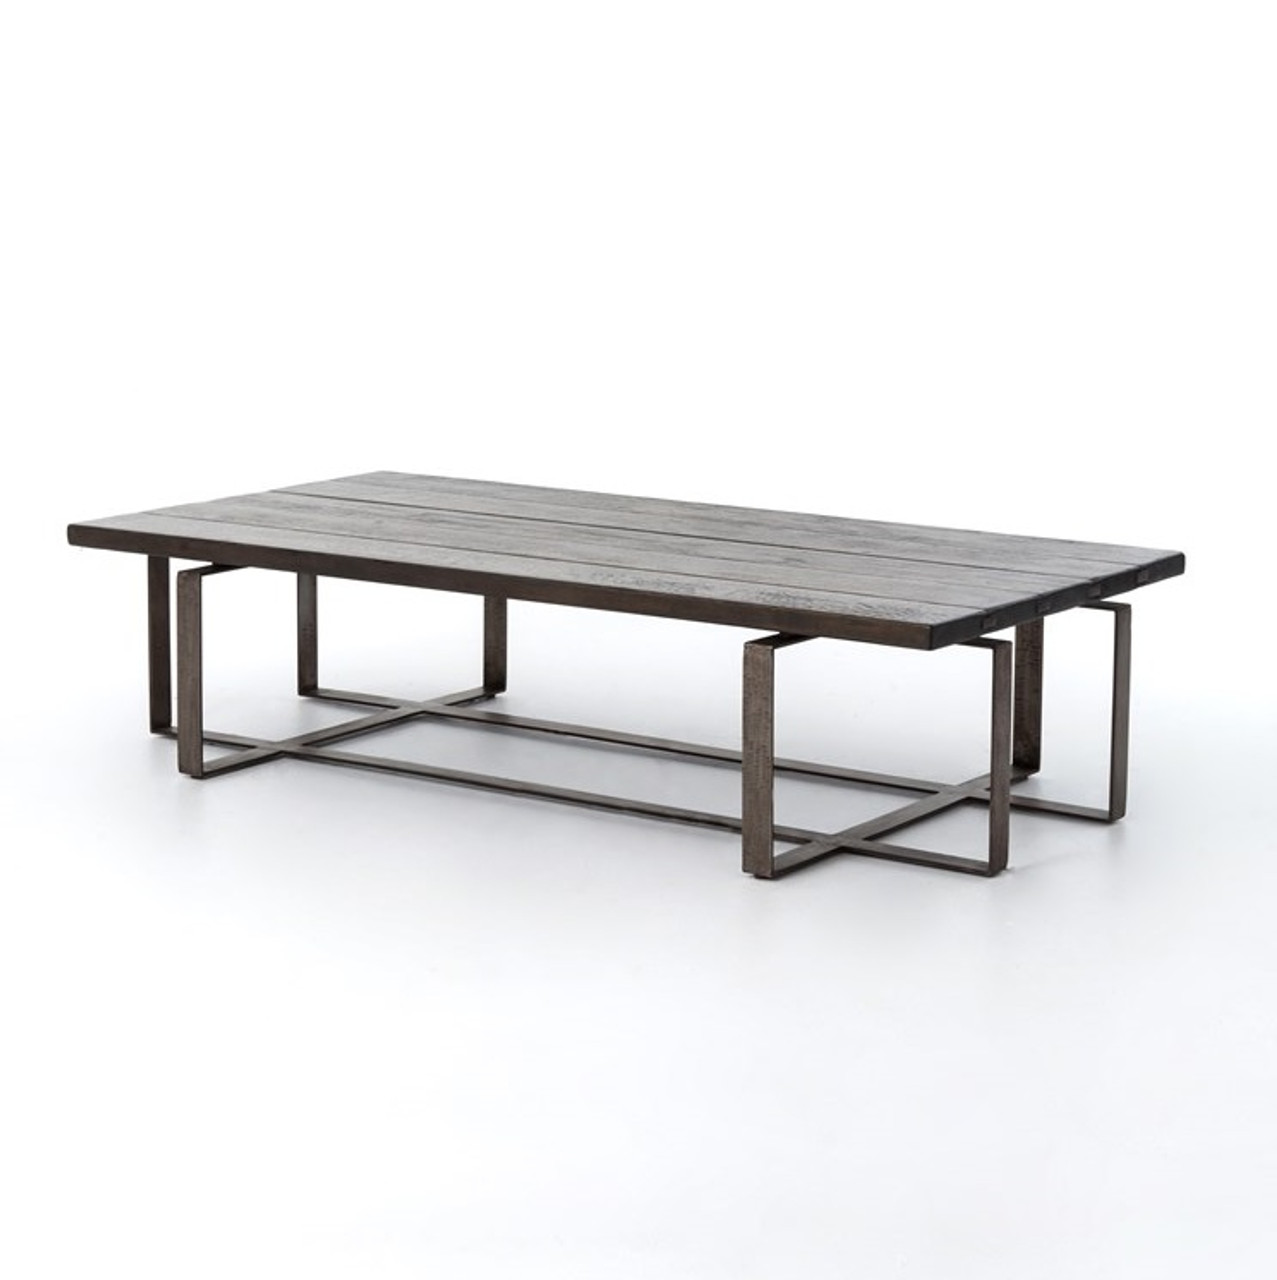 Brant large coffee table with geometric wrought iron base zin home Wrought iron coffee table bases